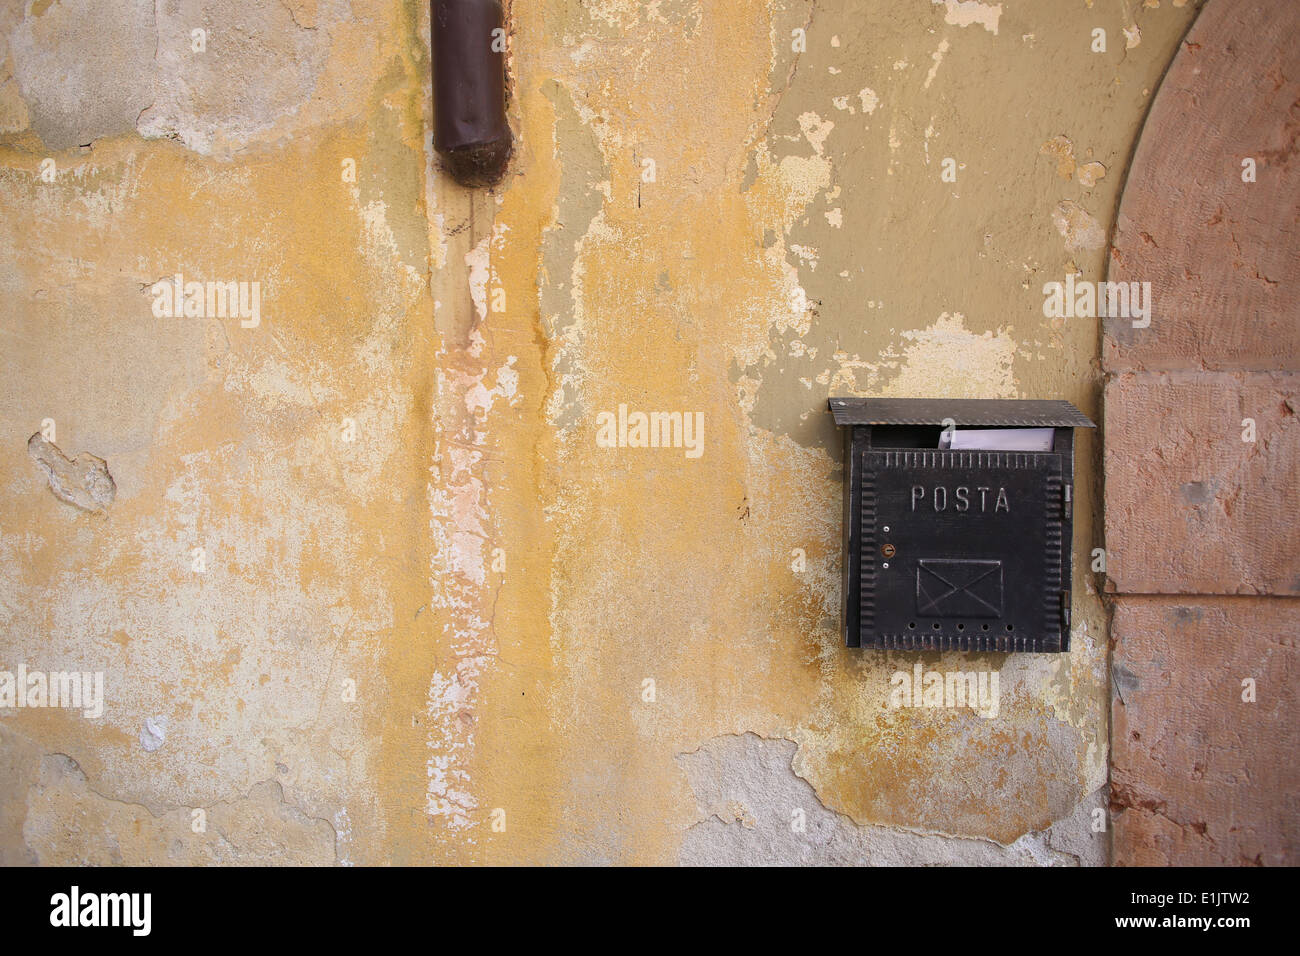 A residential 'Posta' postbox on the side of a peeling yellow wall, Italy. - Stock Image